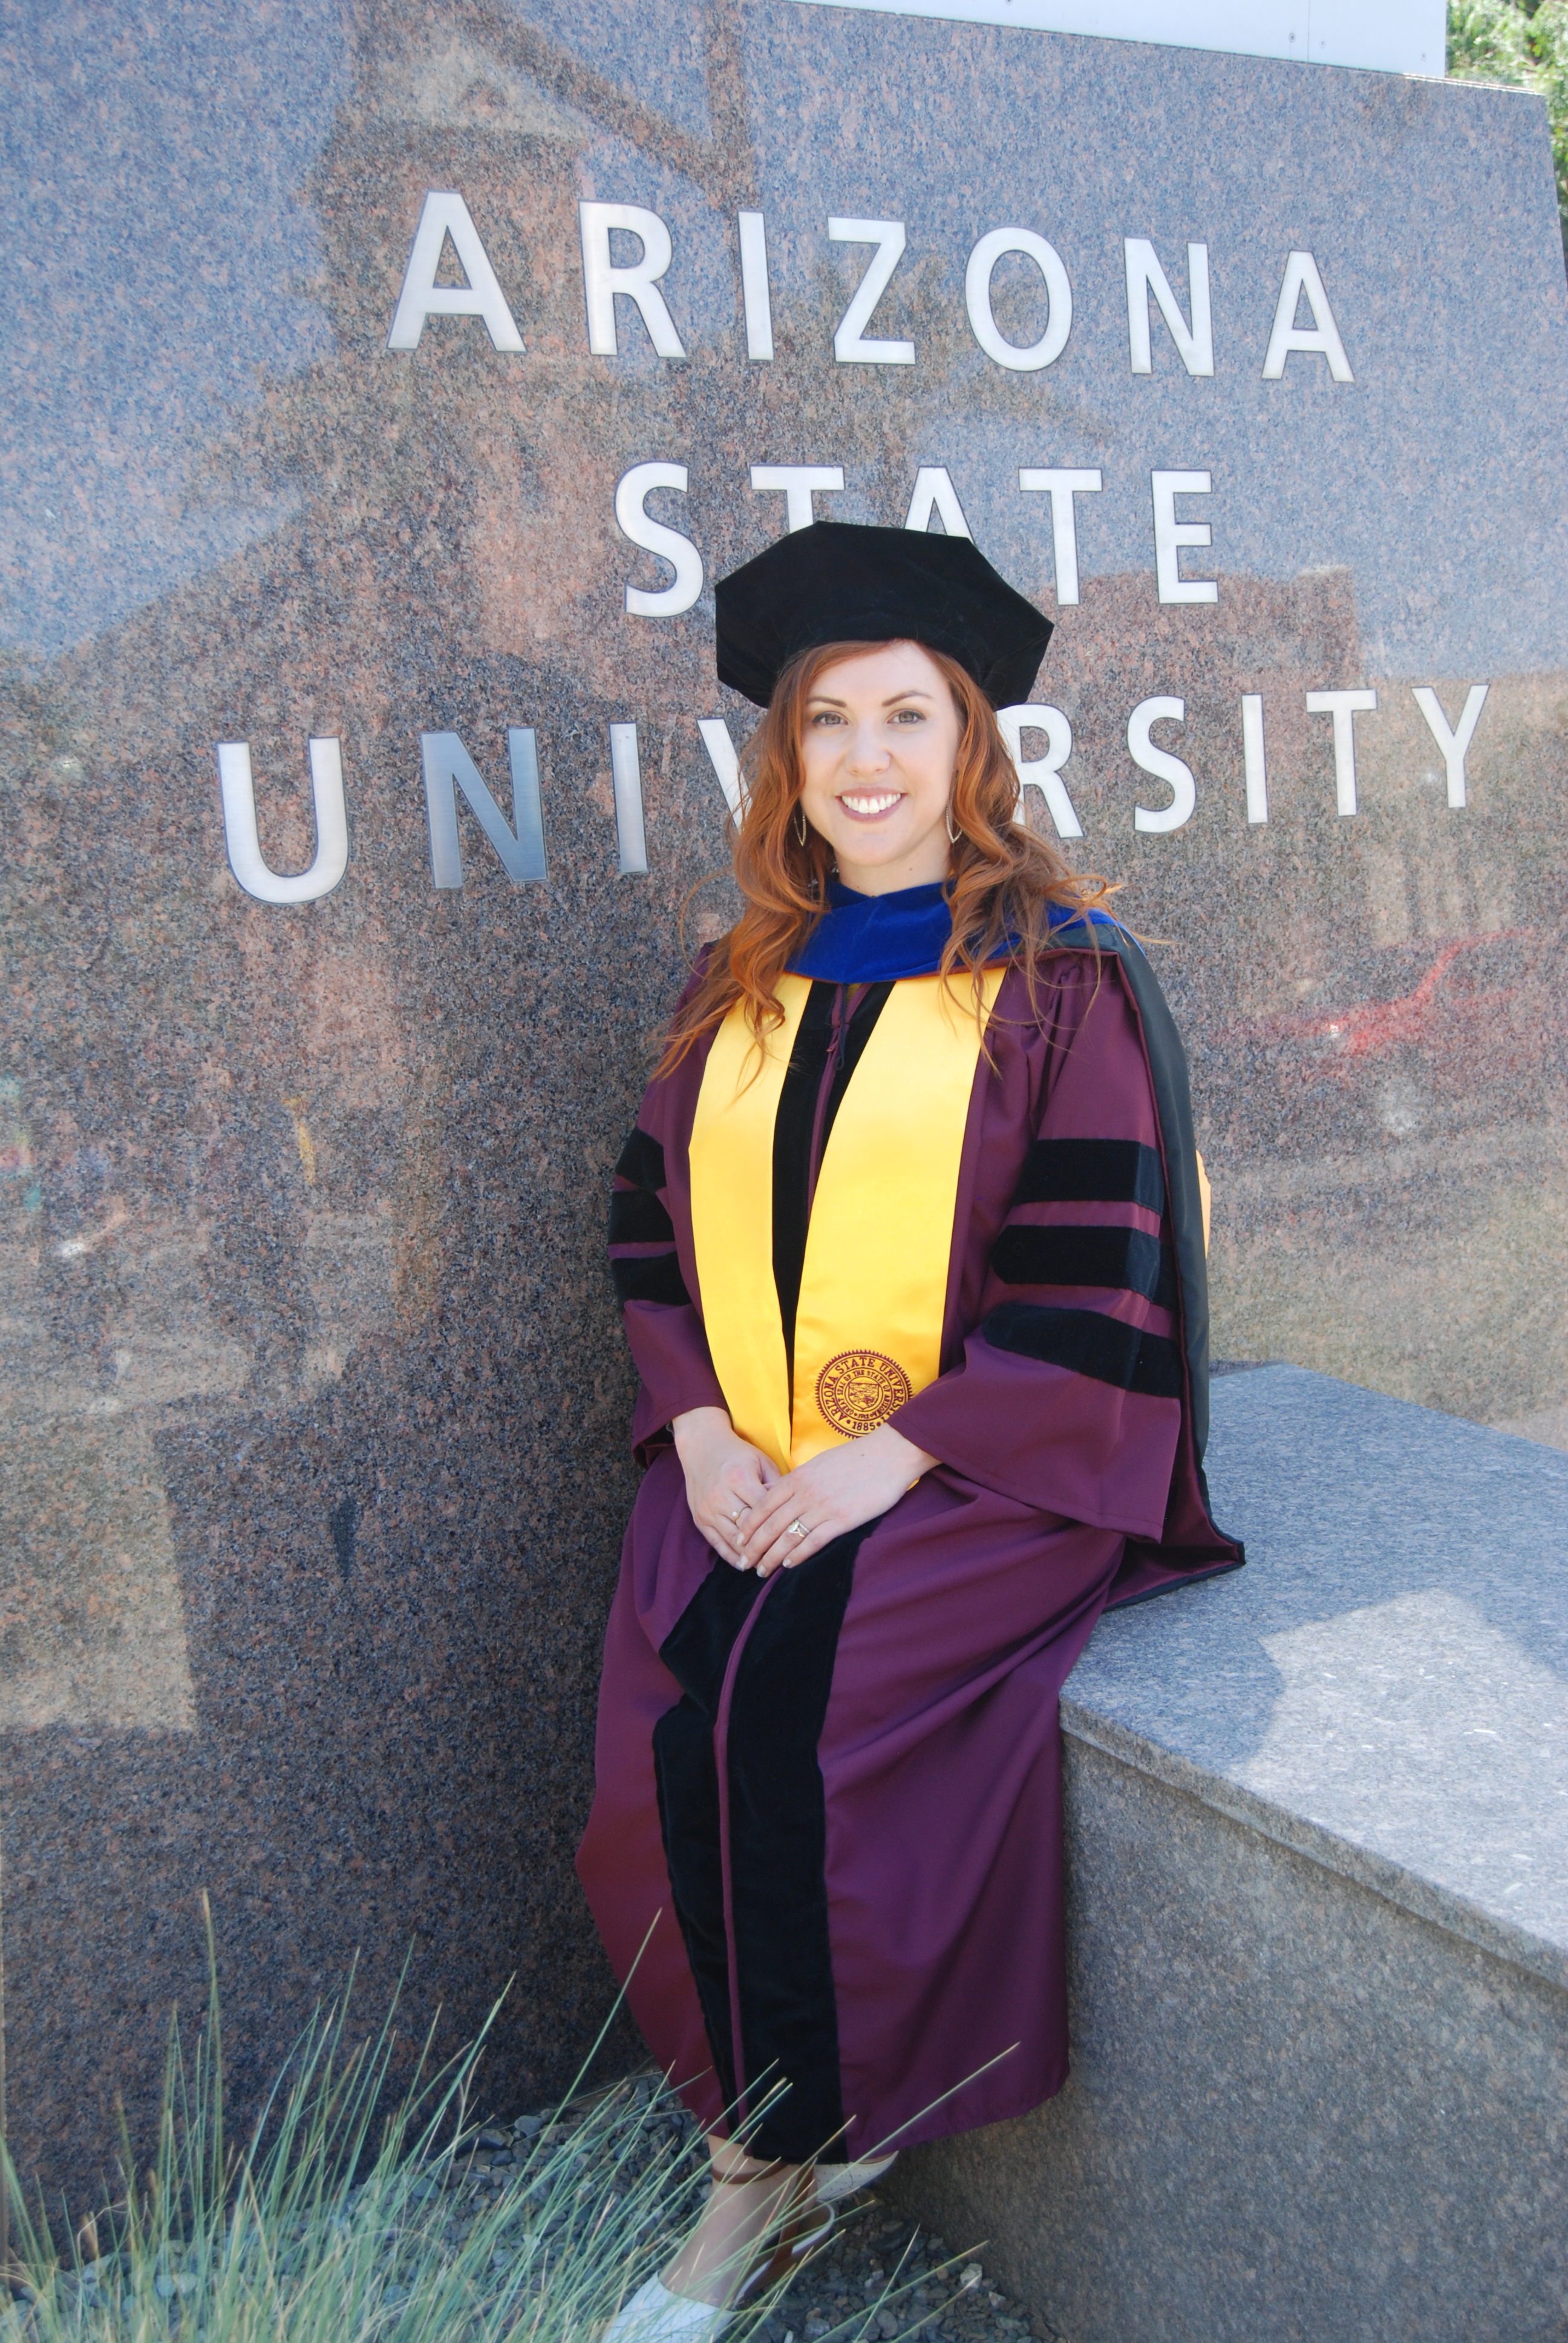 This is not a solo journey': ASU grad talks linguistic compassion